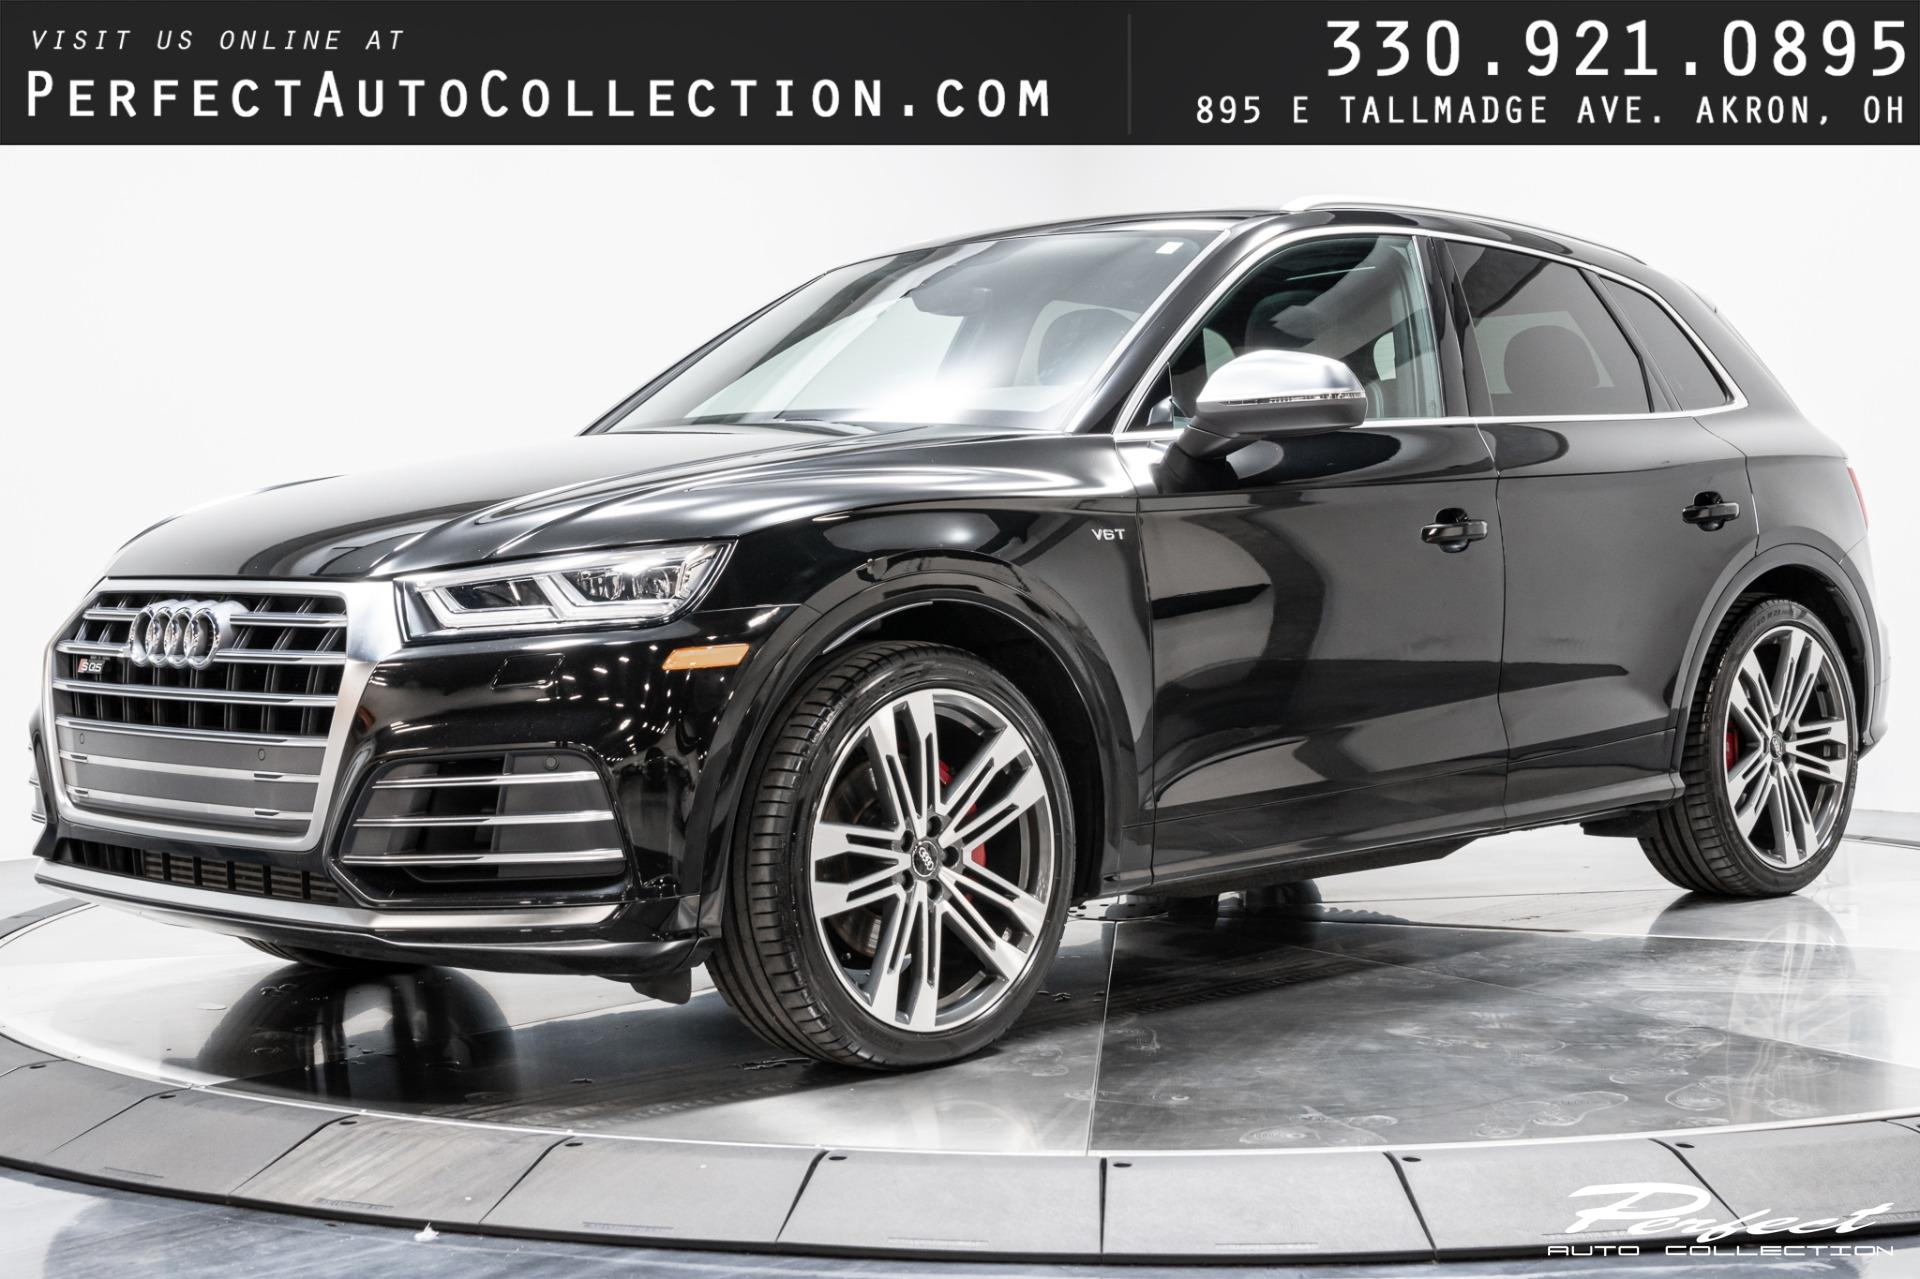 Used 2018 Audi SQ5 3.0T quattro Premium Plus for sale Sold at Perfect Auto Collection in Akron OH 44310 1